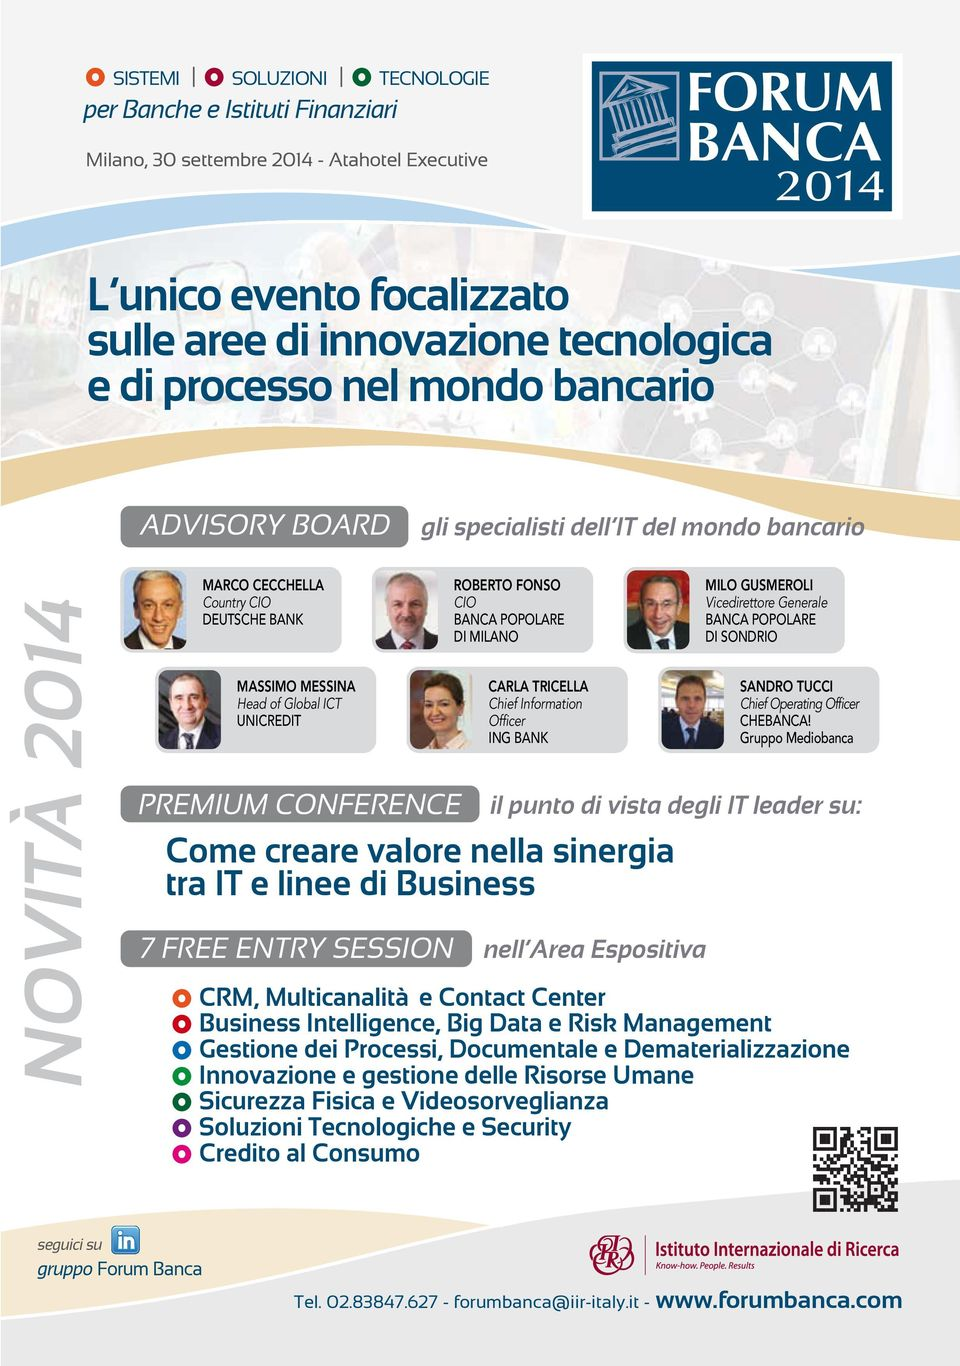 CIO BANCA POPOLARE DI MILANO CARLA TRICELLA Chief Information Officer ING BANK Come creare valore nella sinergia tra IT e linee di Business 7 Free entry SeSSion MILO GUSMEROLI Vicedirettore Generale